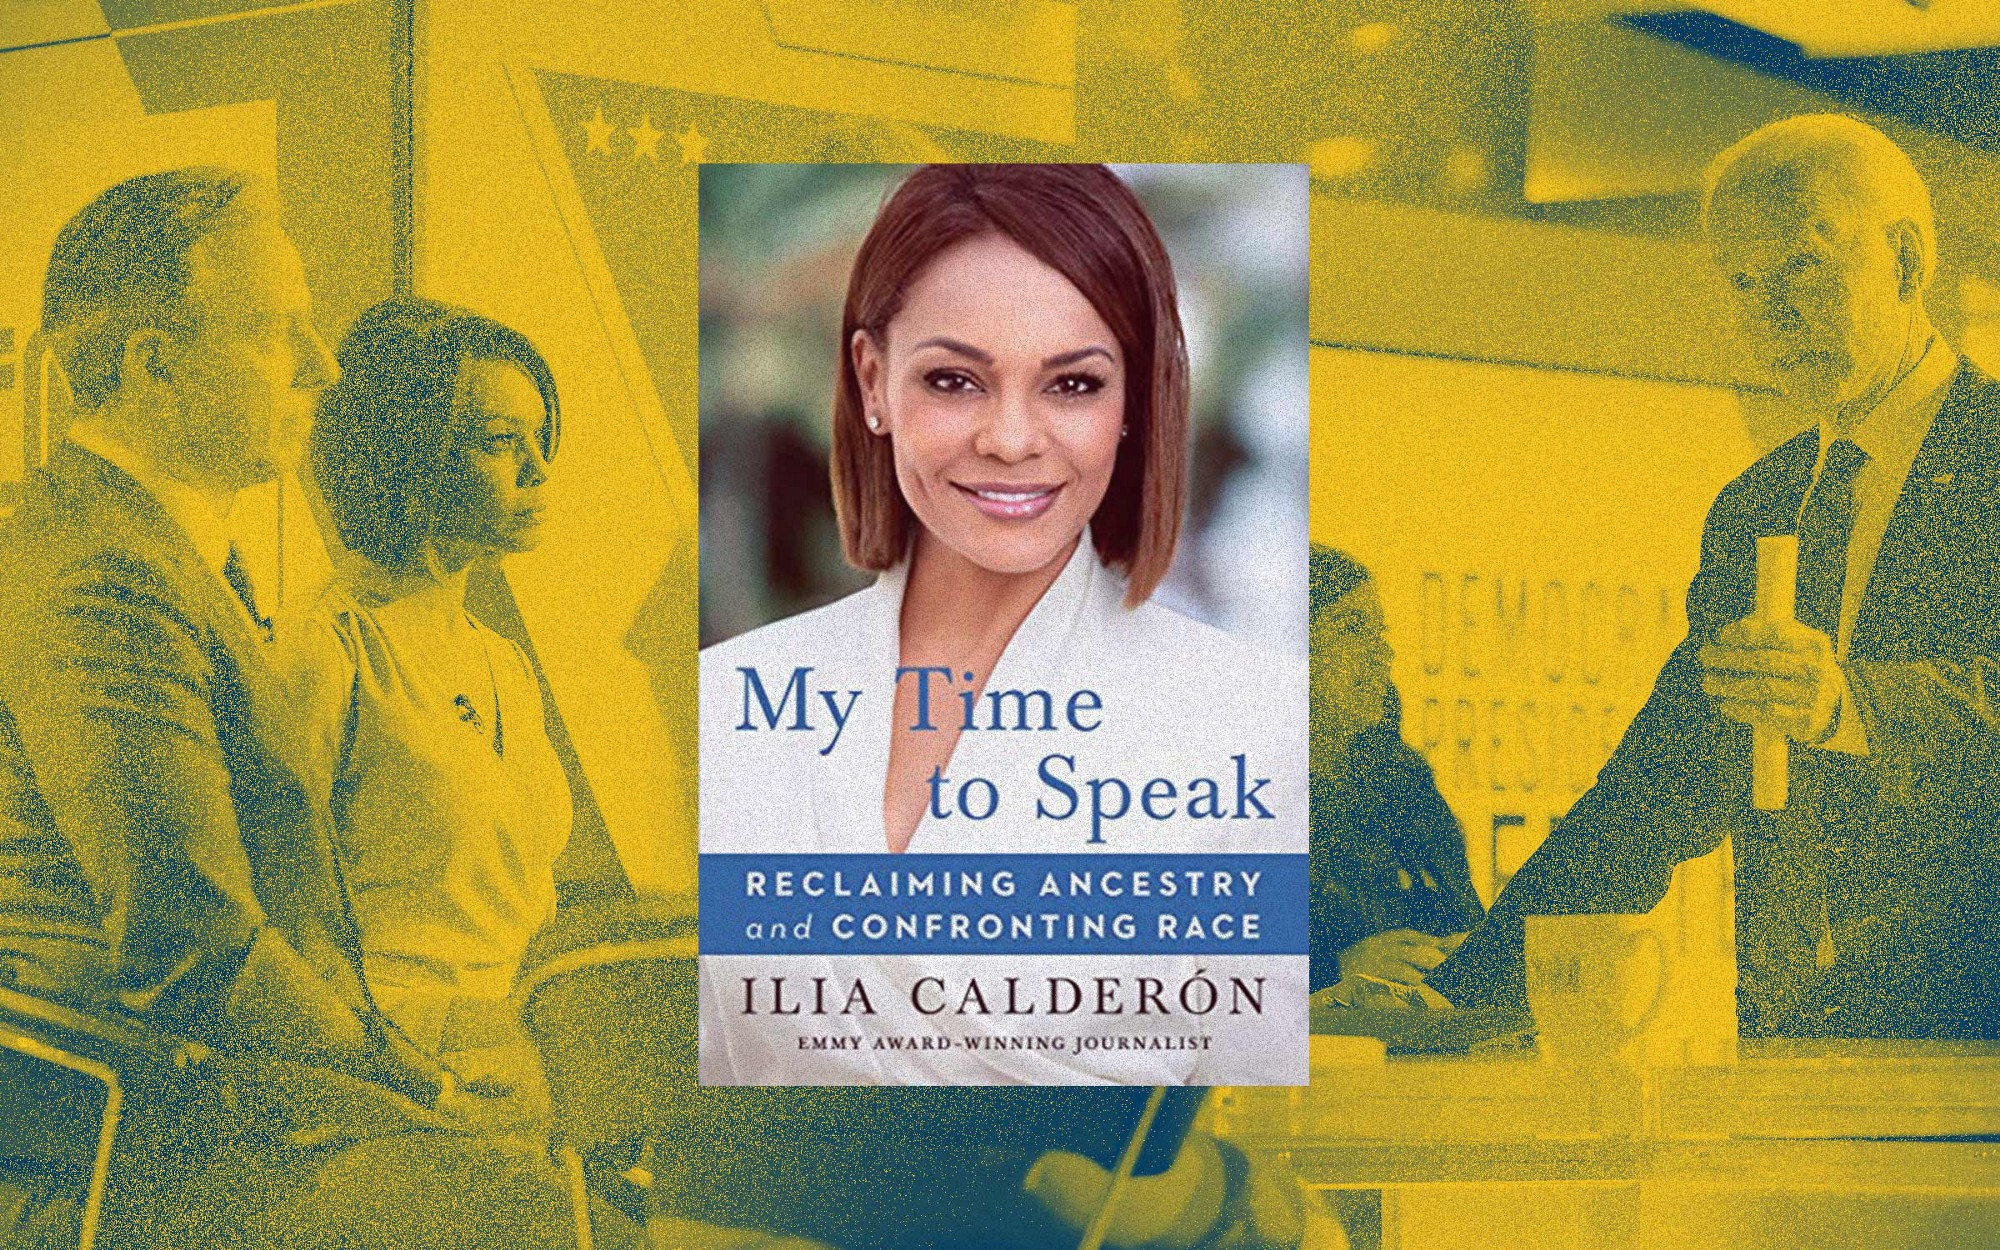 """Book cover of Ilia's book, """"My Time to Speak,"""" against a yellow filter background photo of Ilia in the CNN newsroom."""